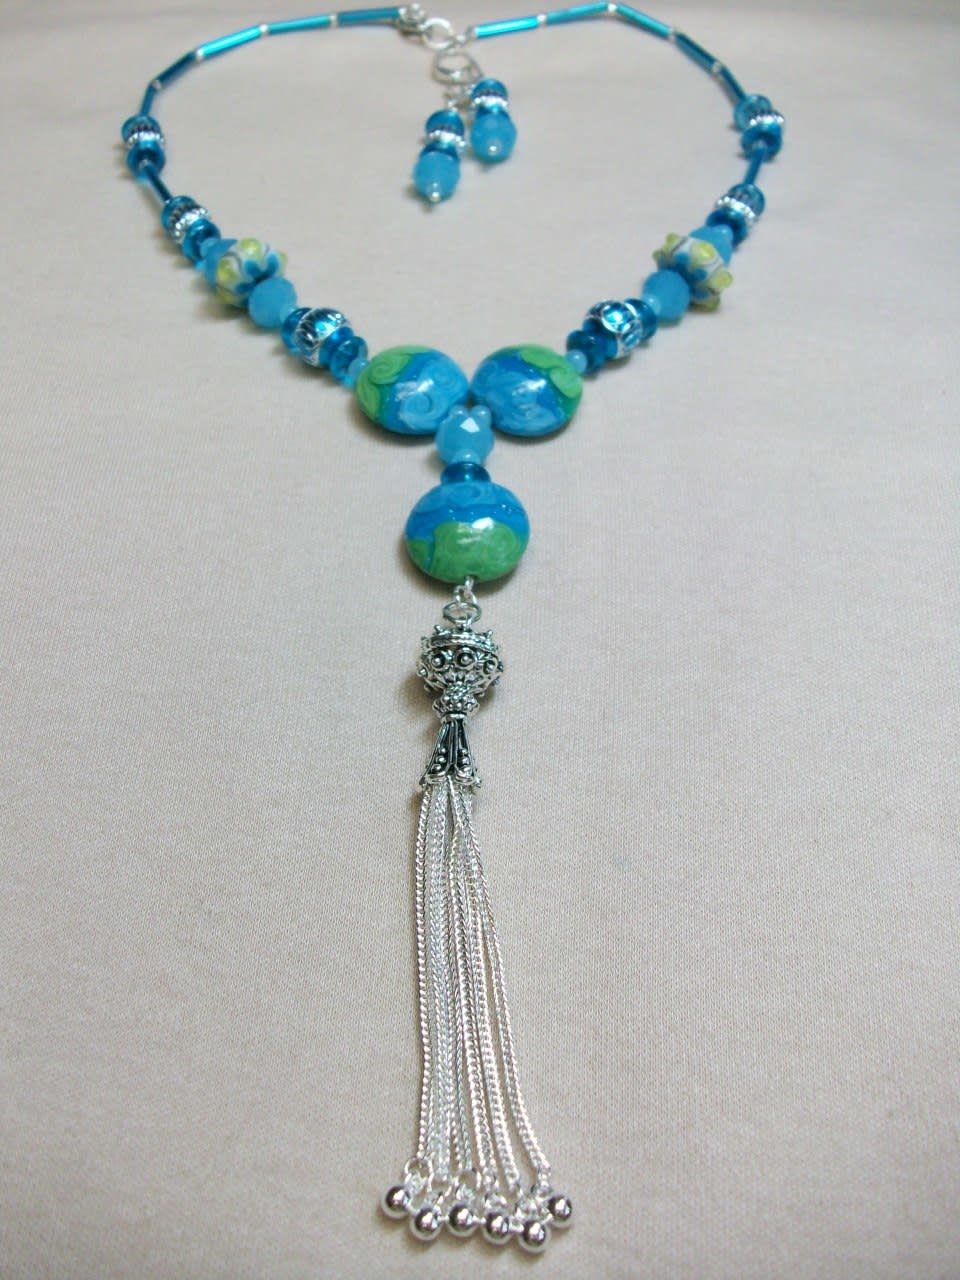 Sharon B's Originals 3 Aqua & Lime Disk Beads w/ Silver Tassel Necklace & Earring Set